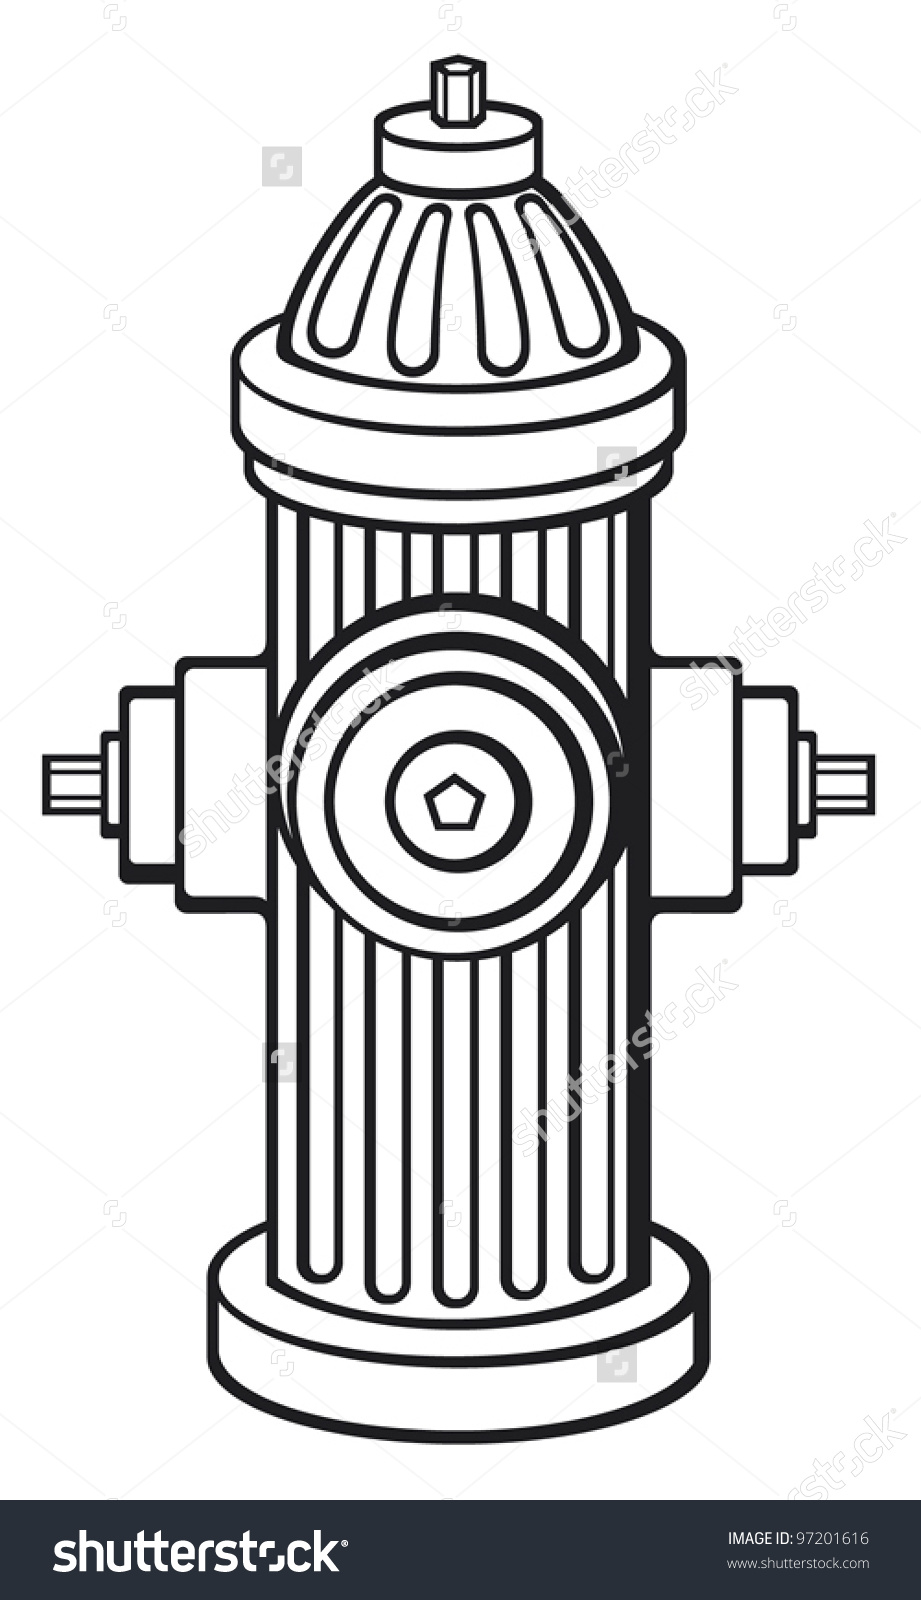 Fire Hydrant Image Clipart.